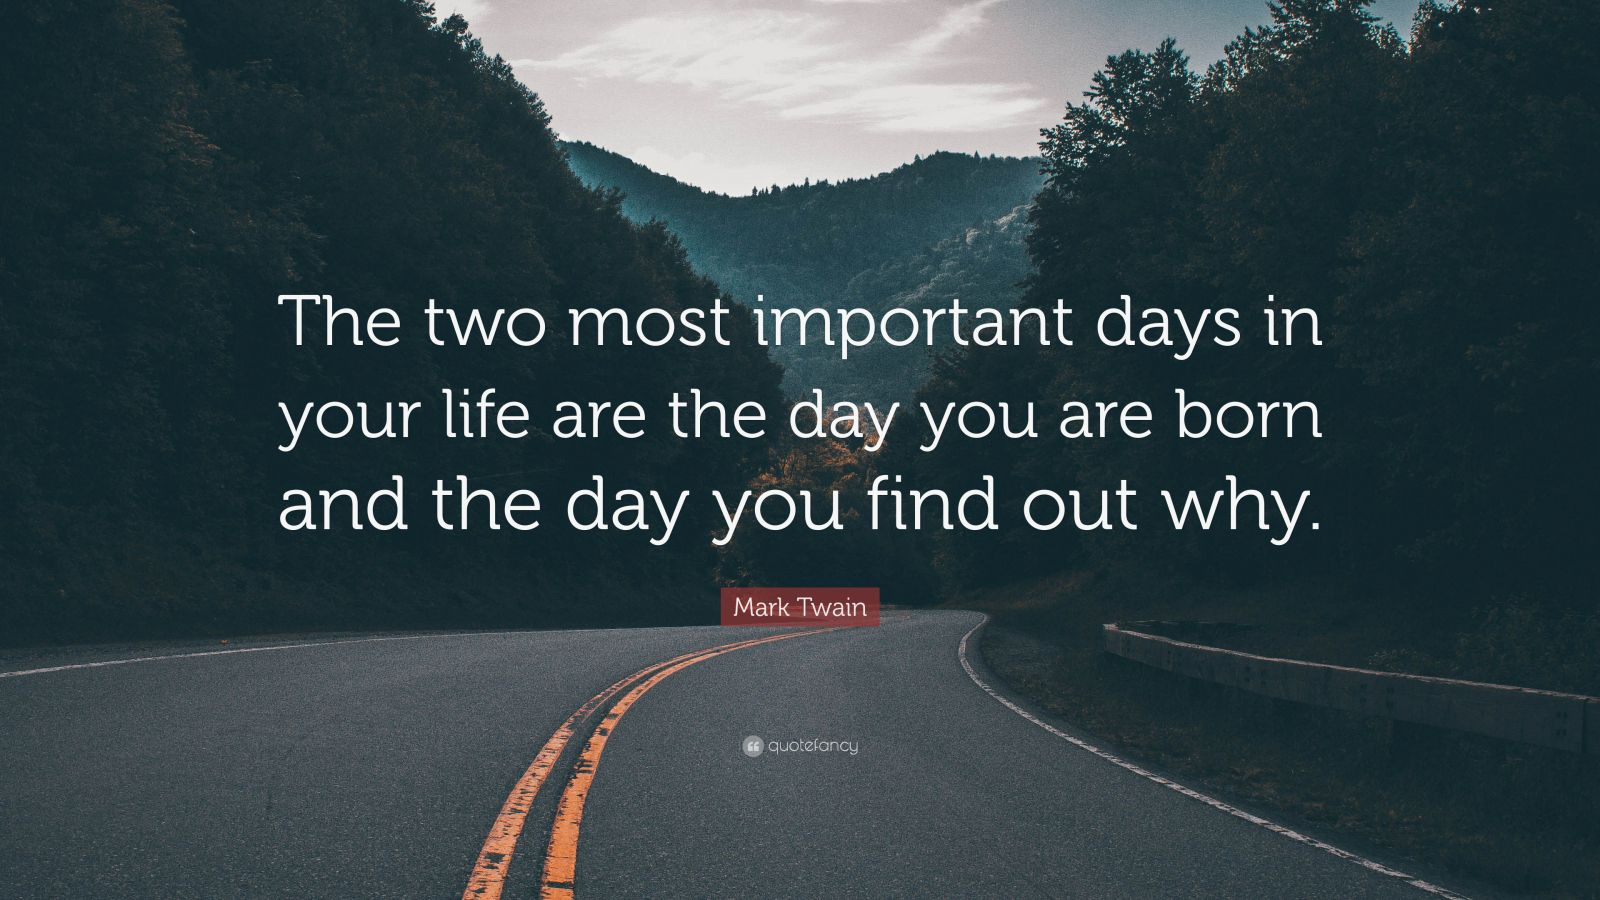 describe the most important day in your life Free coursework on creative writing the most important day of my life from essayukcom, the uk essays company for essay, dissertation and coursework writing.